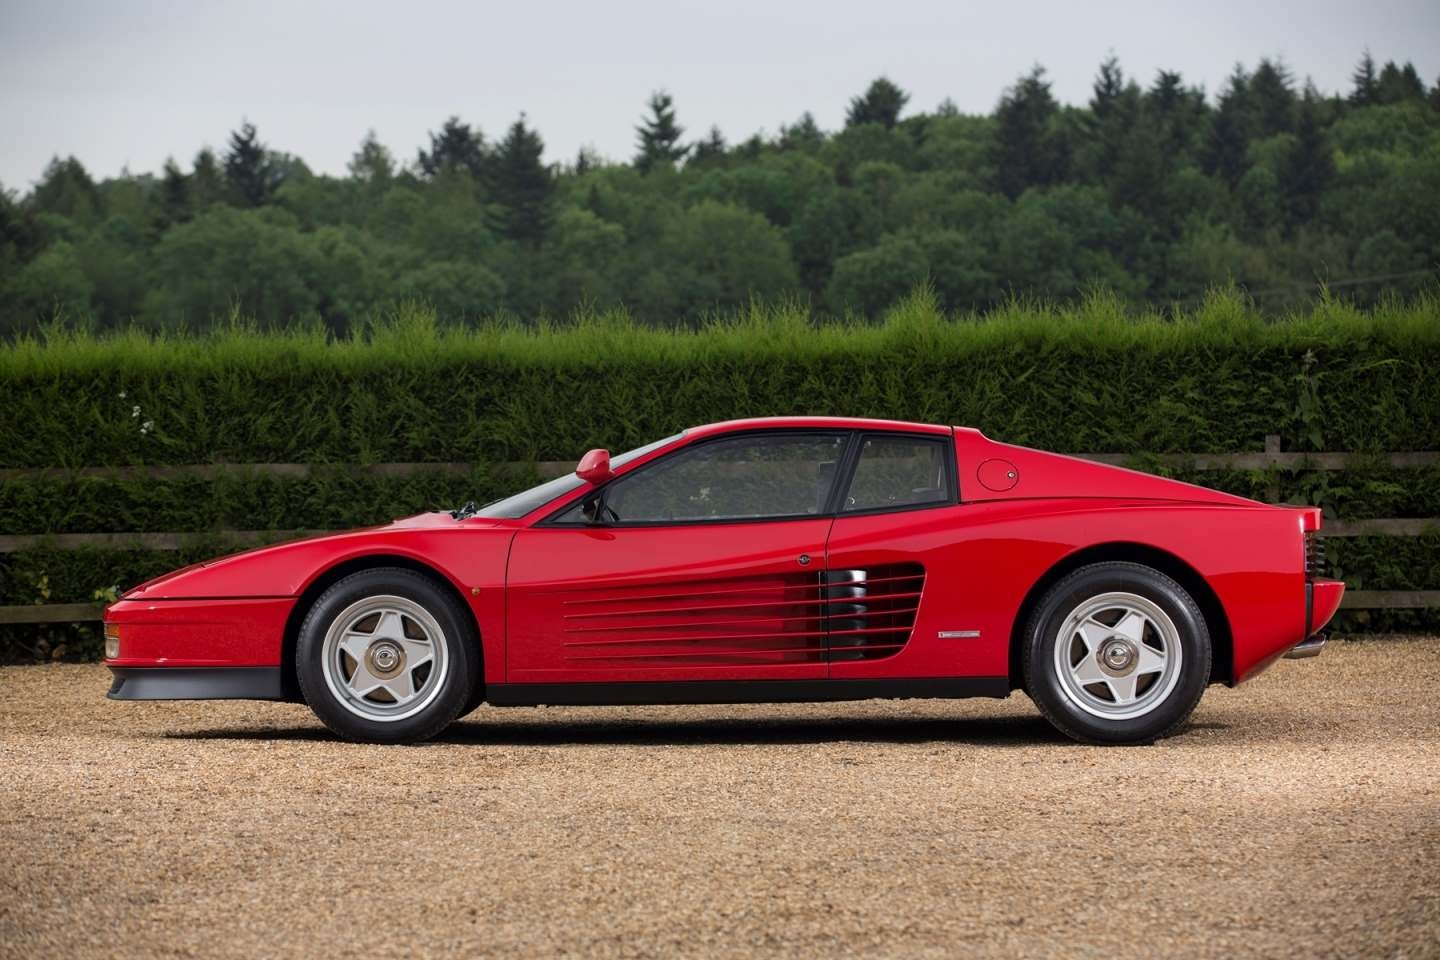 ferrari testarossa for sale. Cars Review. Best American Auto & Cars Review